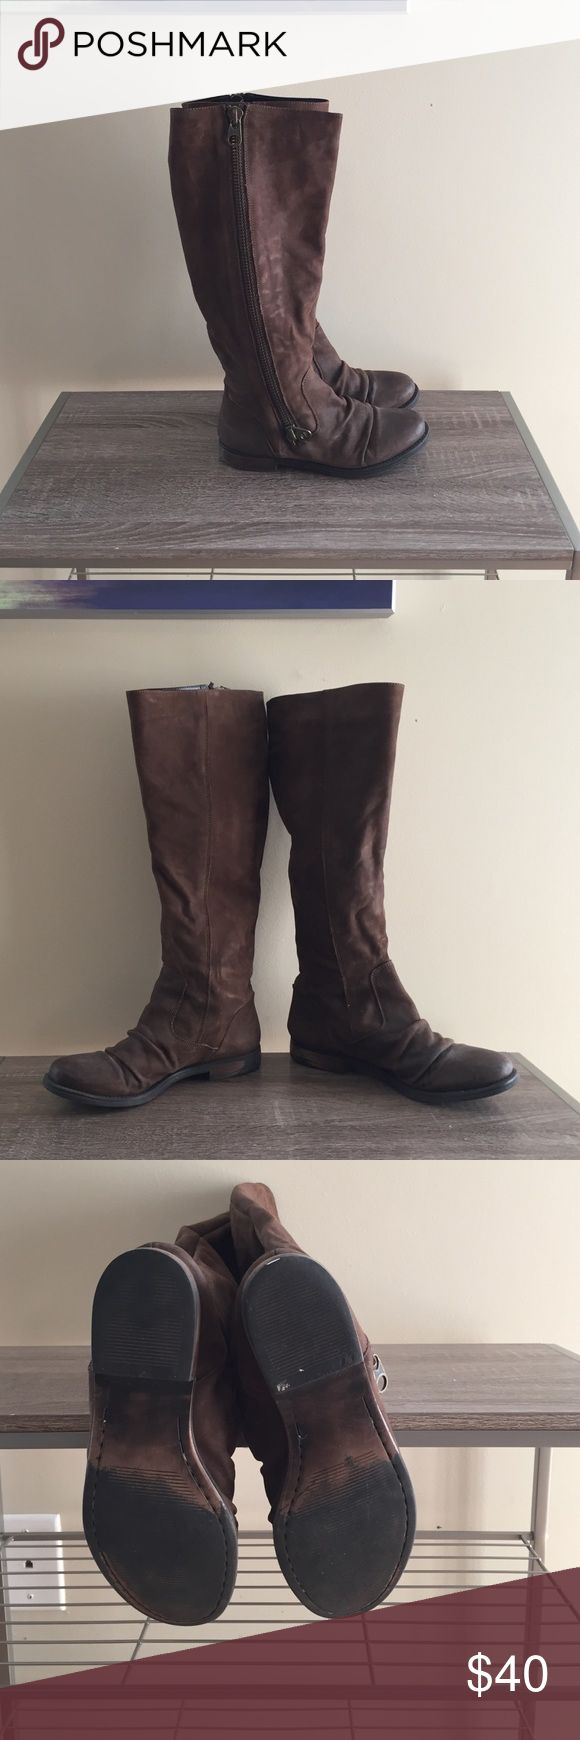 Tall side zip boots Tall dark brown leather boots with side zippers. Good condition. No box. Steve Madden Shoes Combat & Moto Boots